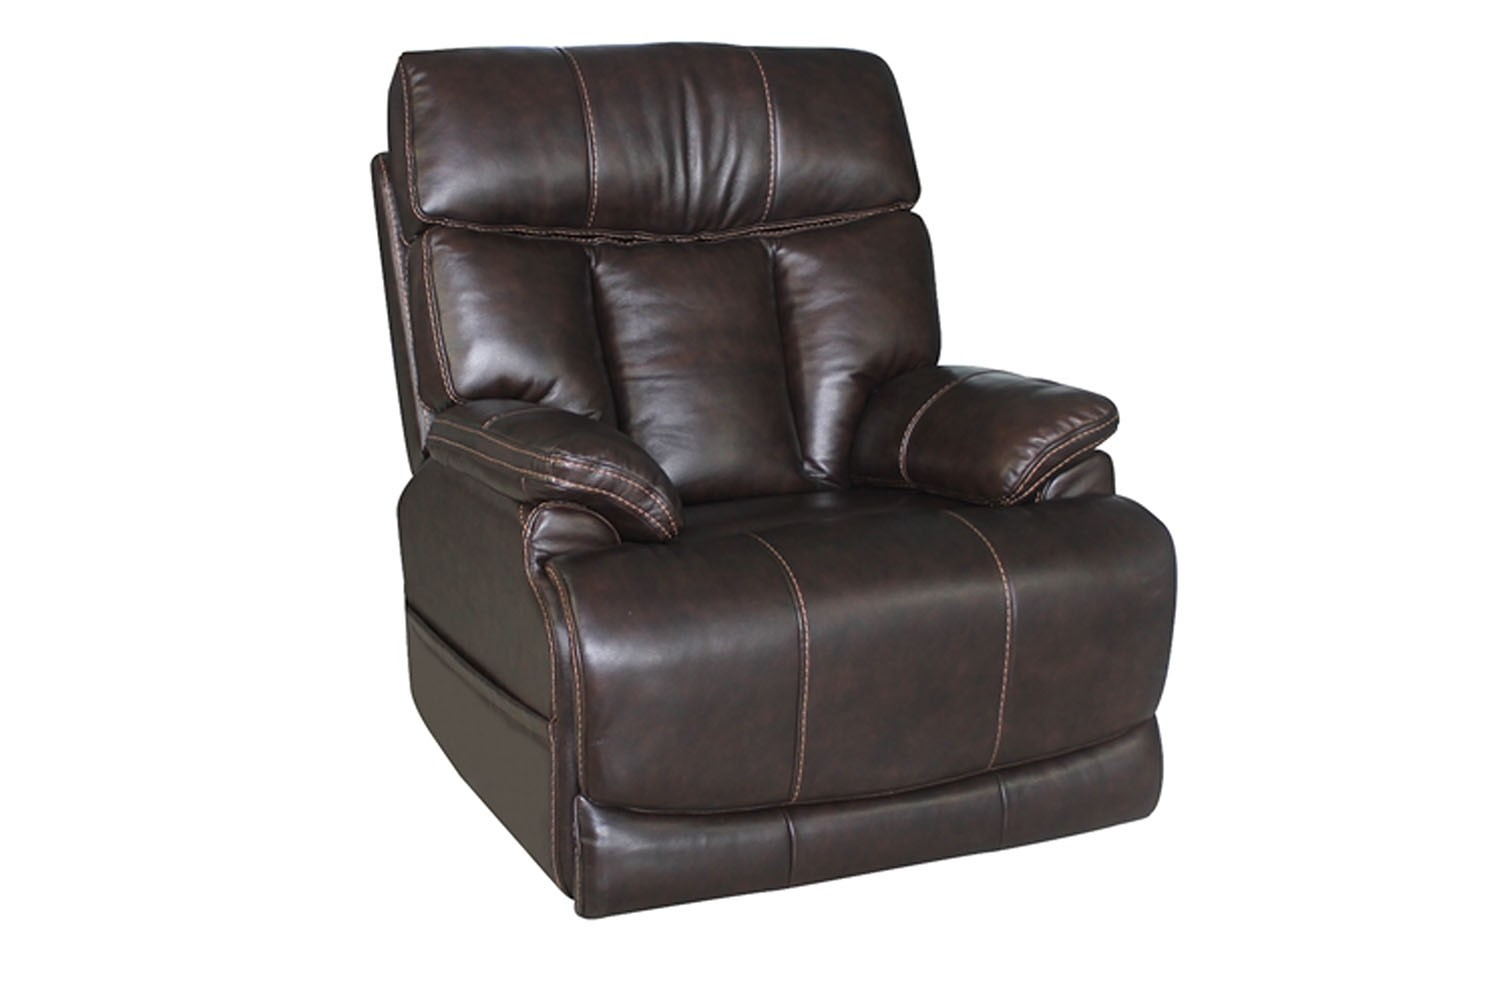 Charmant Yukon Power Recliner